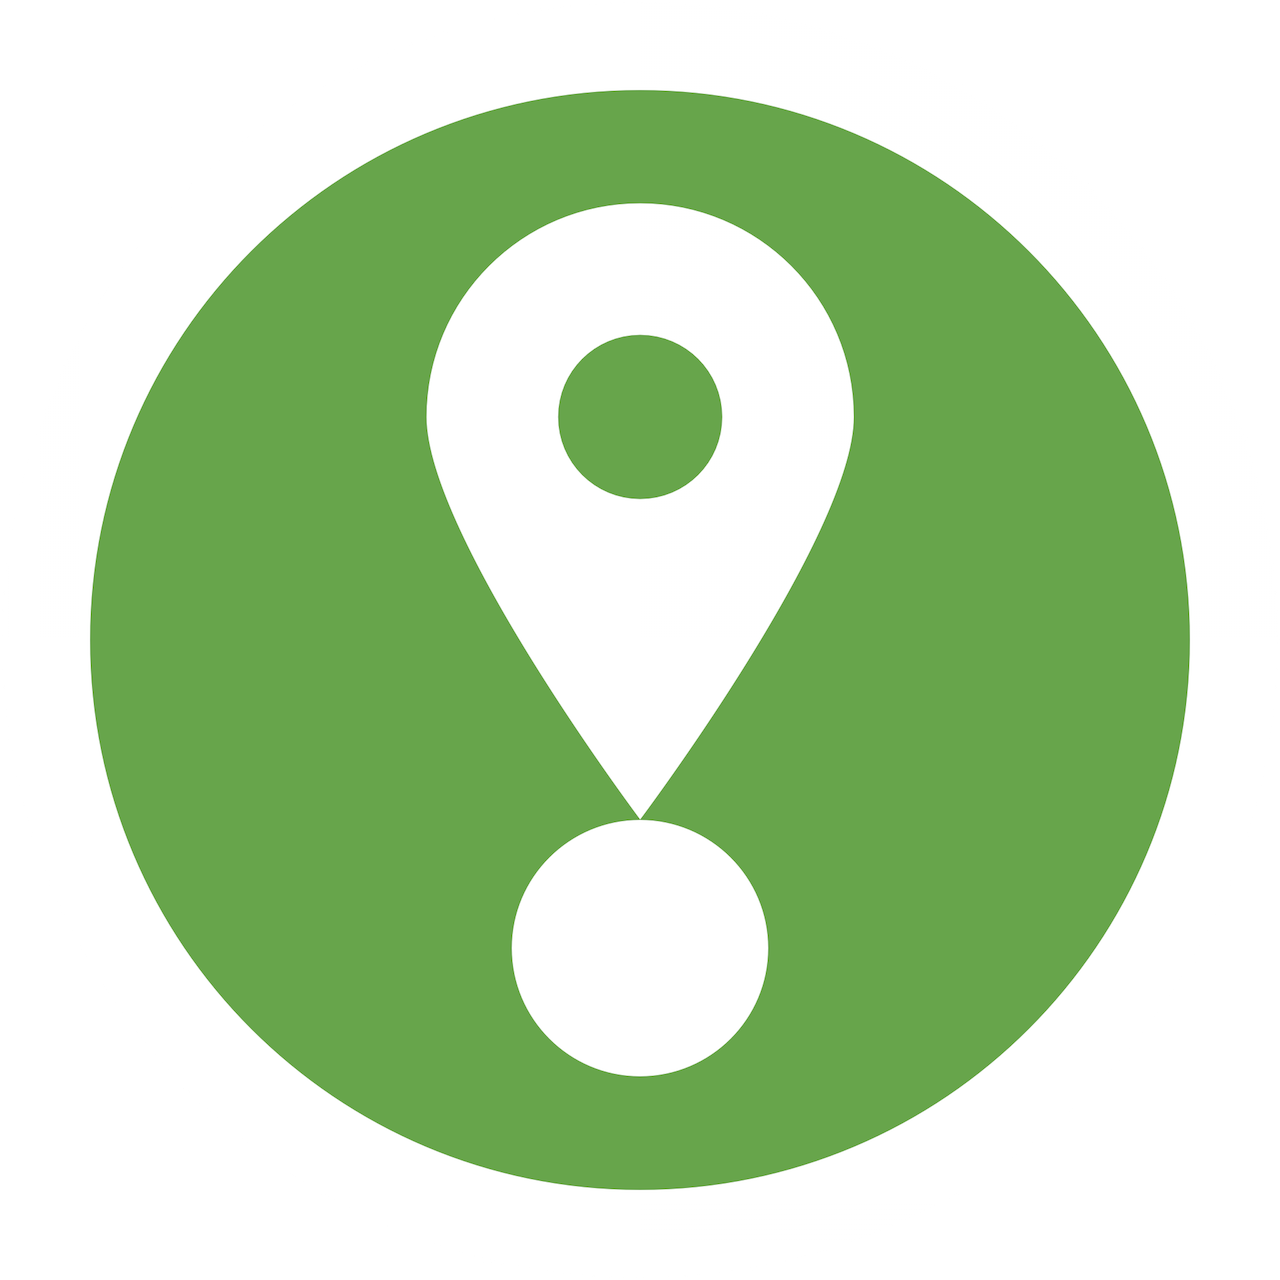 The Slamfind logo. Check out the website and download the app to learn more.